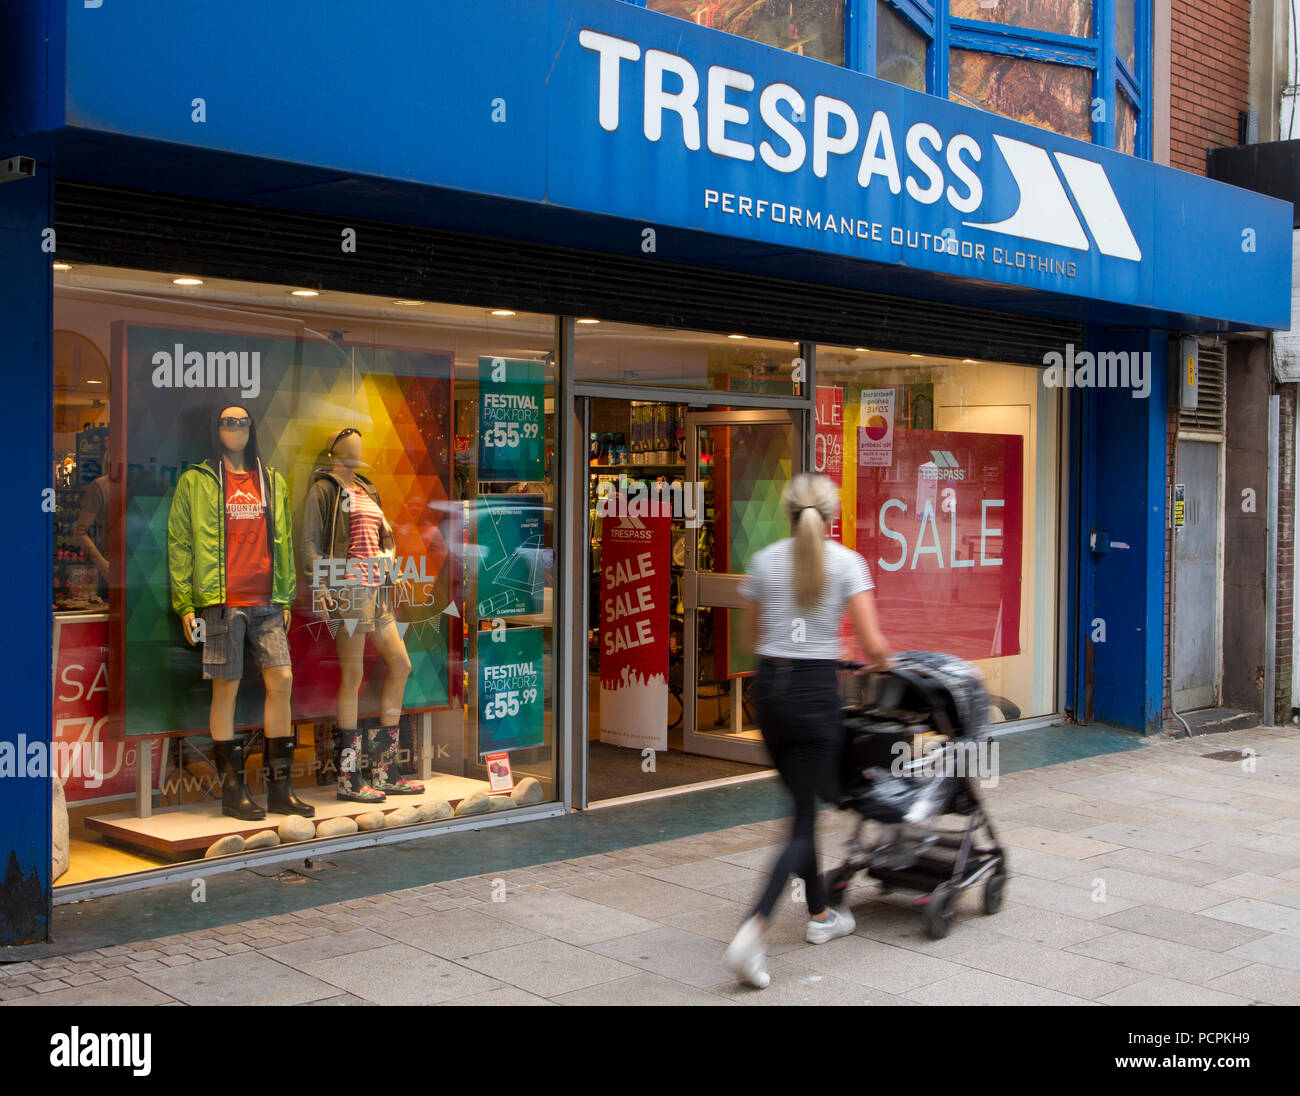 Trespass Sale of performance outdoor clothing; Summer Sales and promotions in Fishergate, Preston, UK - Stock Image